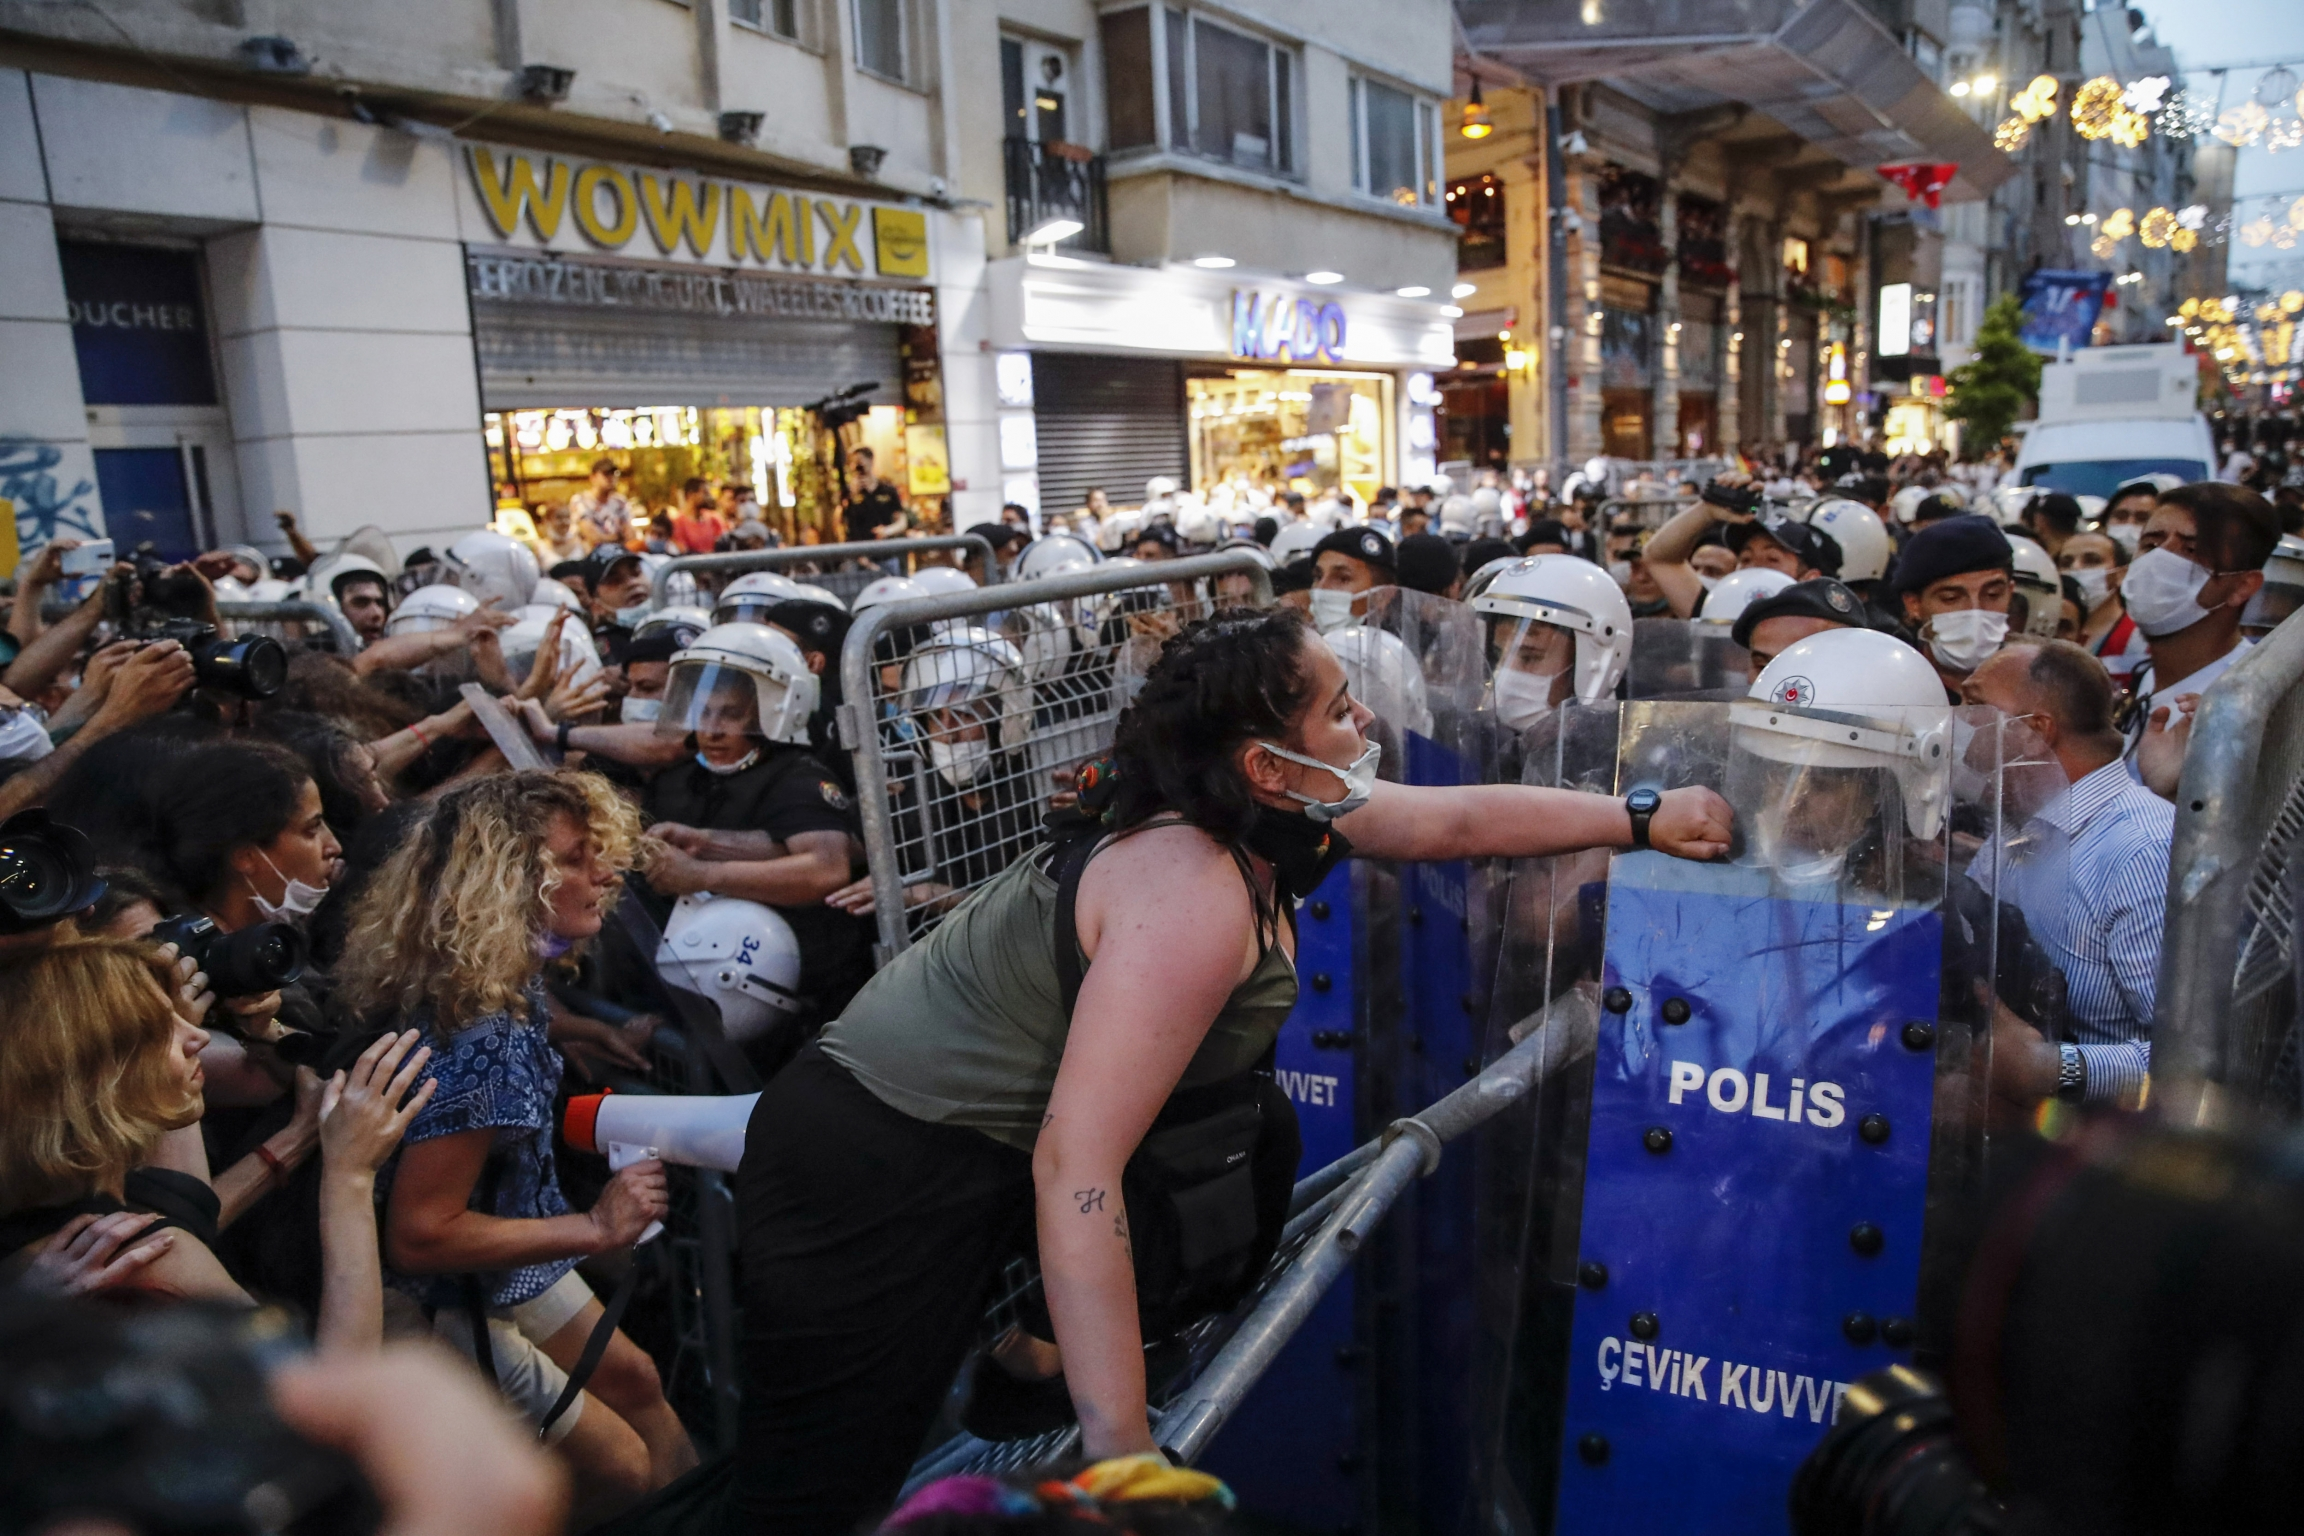 Protesters, left, clash with police officers preventing them from marching against the government's decision to withdraw from Istanbul Convention, in Istanbul, Thursday, July 1, 2021.